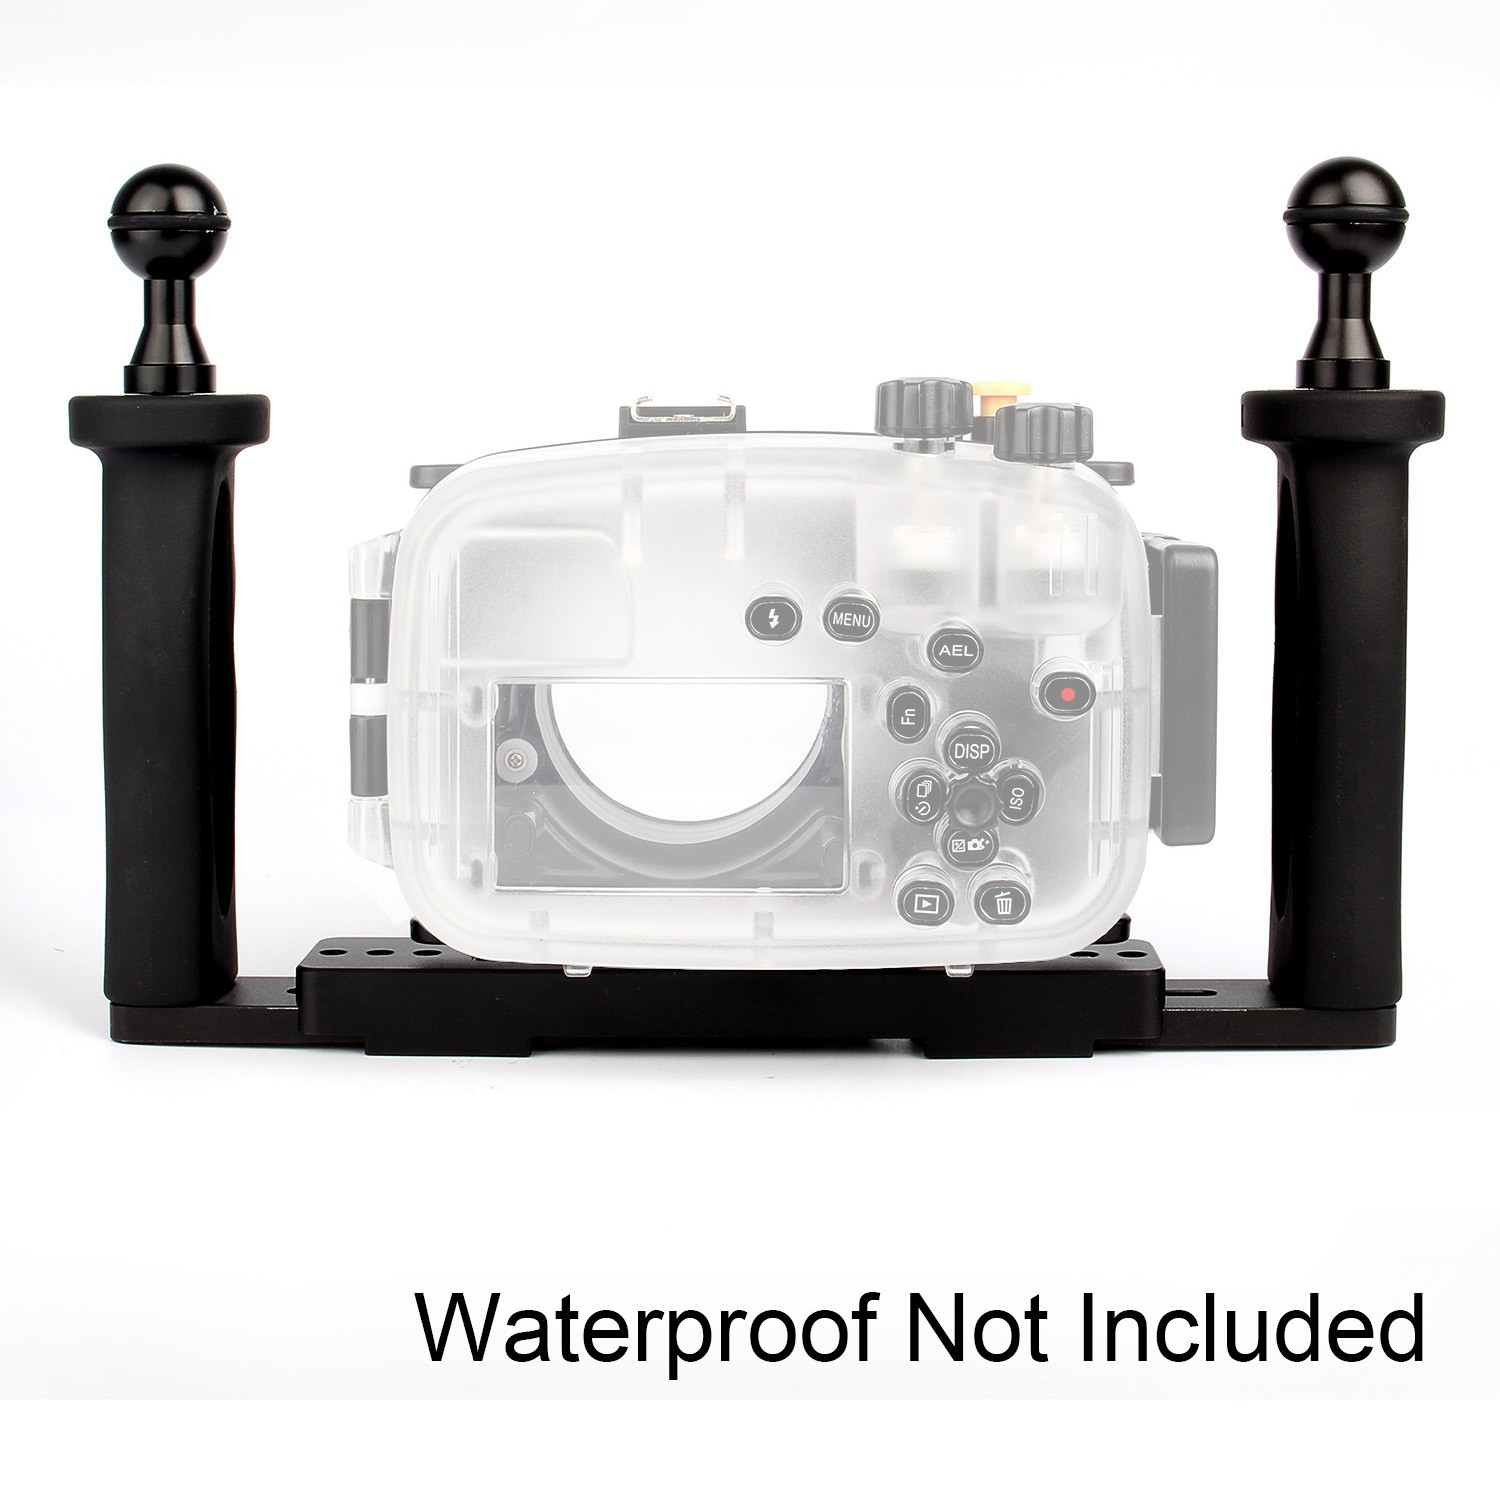 Meikon Two Hands Aluminium Tray for Underwater Camera Housing meikon 40m waterproof underwater camera housing case bag for canon 600d t3i